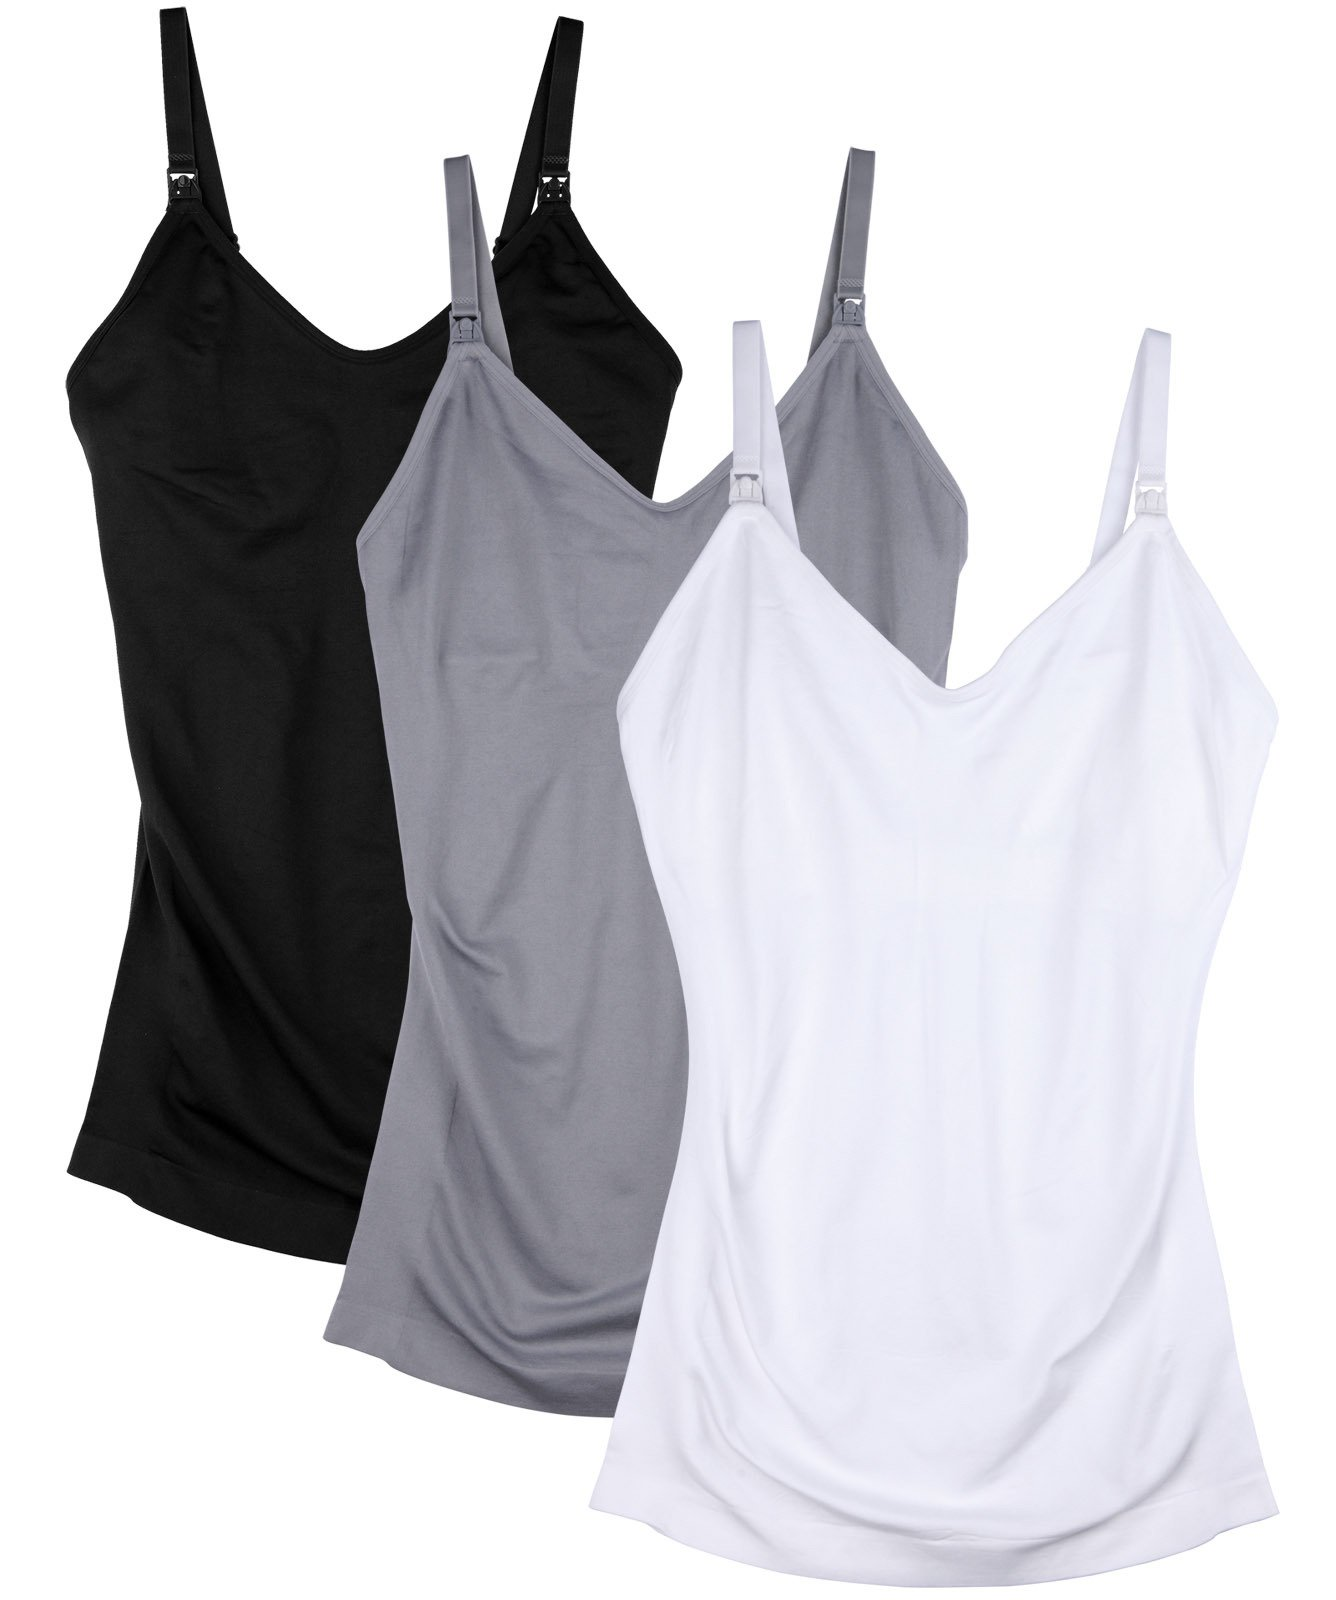 Daisity Womens Maternity Nursing Tank Cami for Breastfeeding with Adjustable Straps Pack of 3 Color Black Grey White Size XL